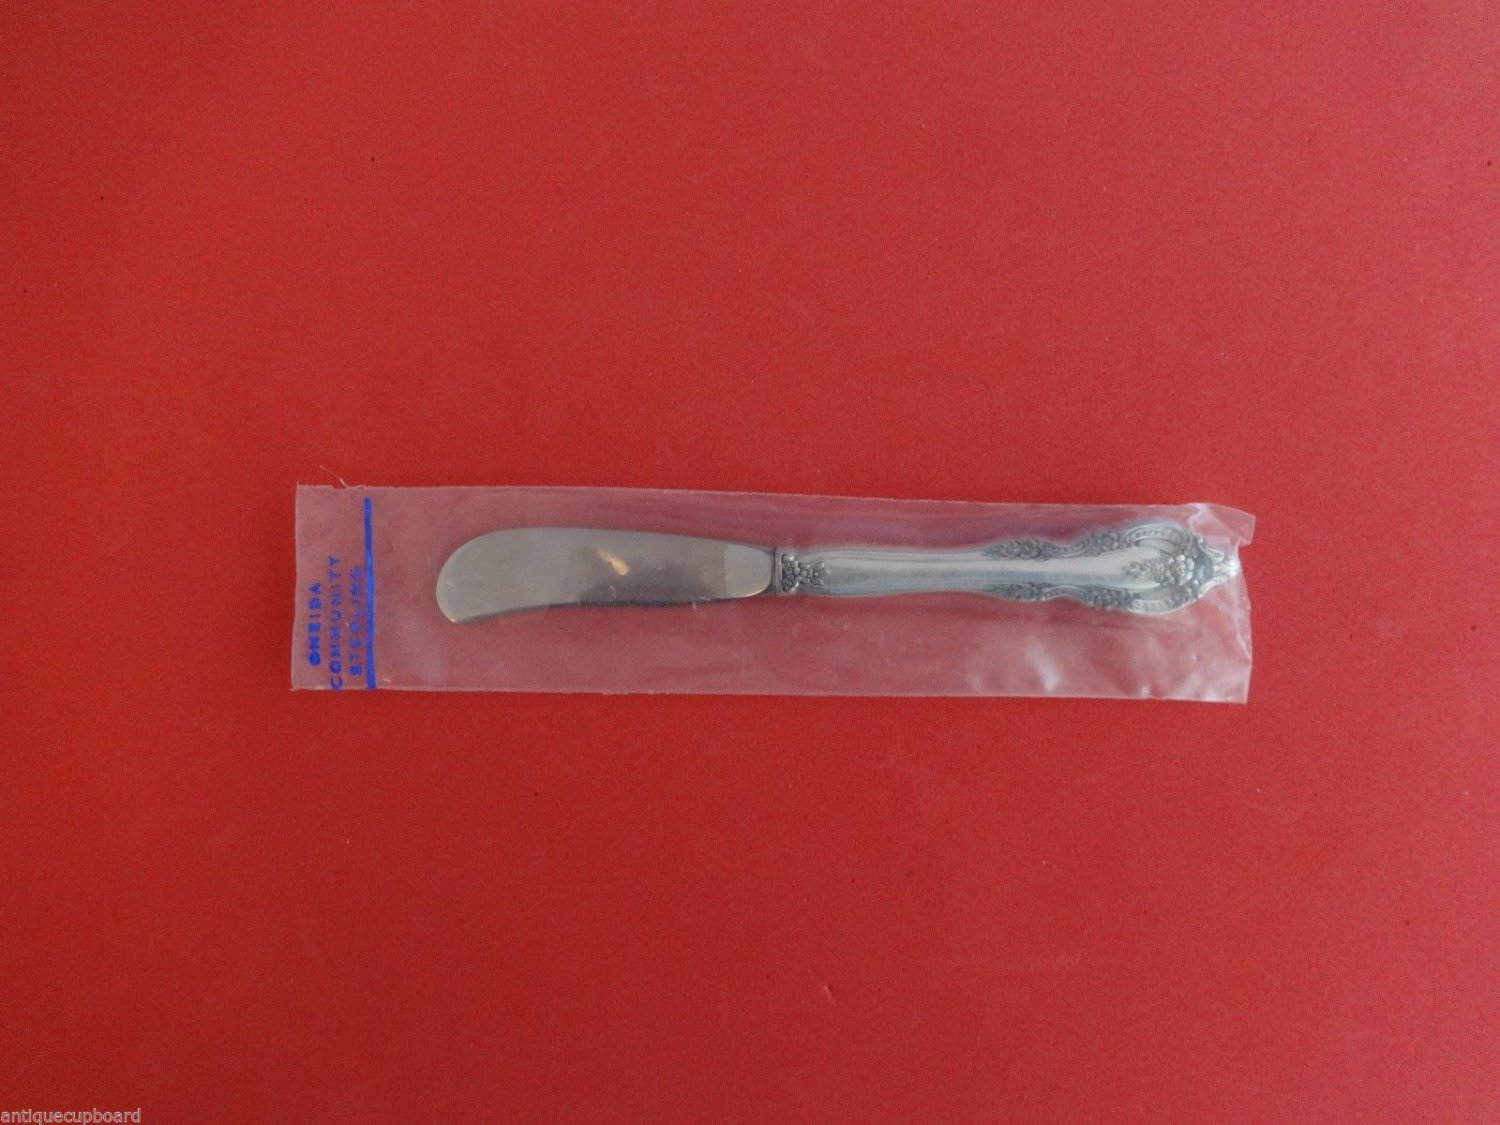 "Mediterranea by Oneida Sterling Silver Butter Spreader Hollow Handle 6 3/8"" New"